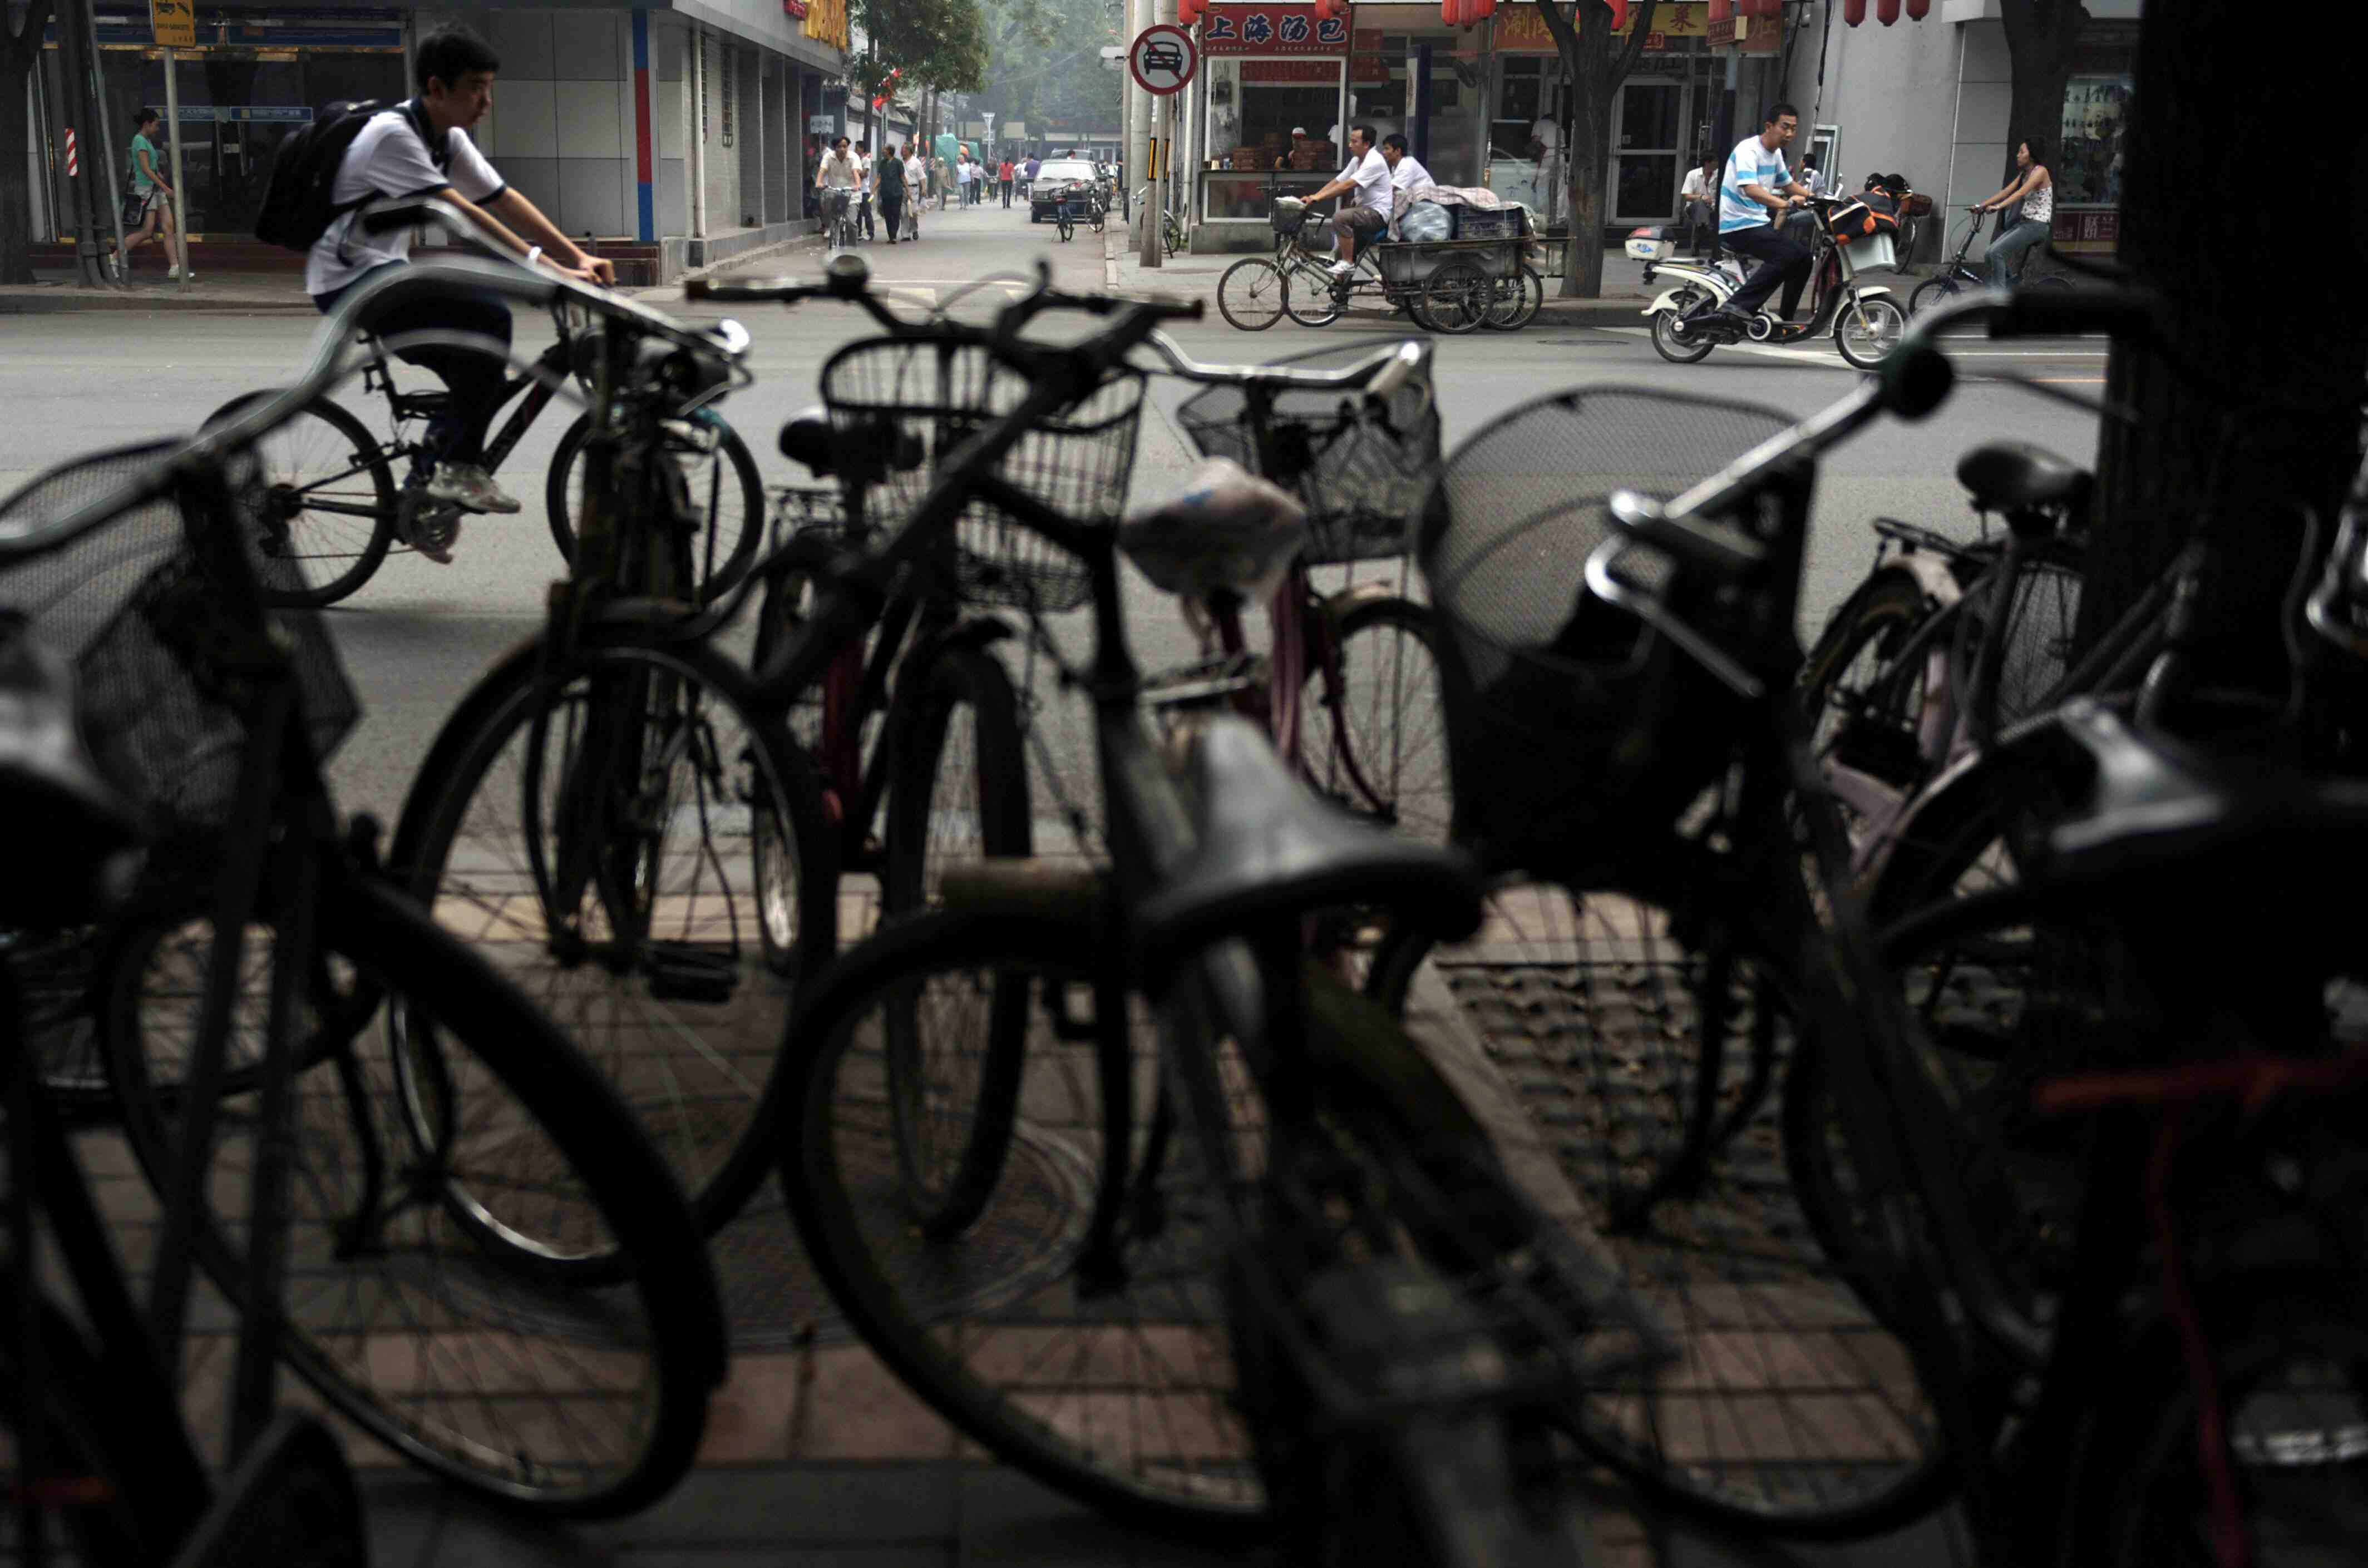 Bicycles are everywhere in Taiwan City - much to the chagrin of the Taiwanese government.